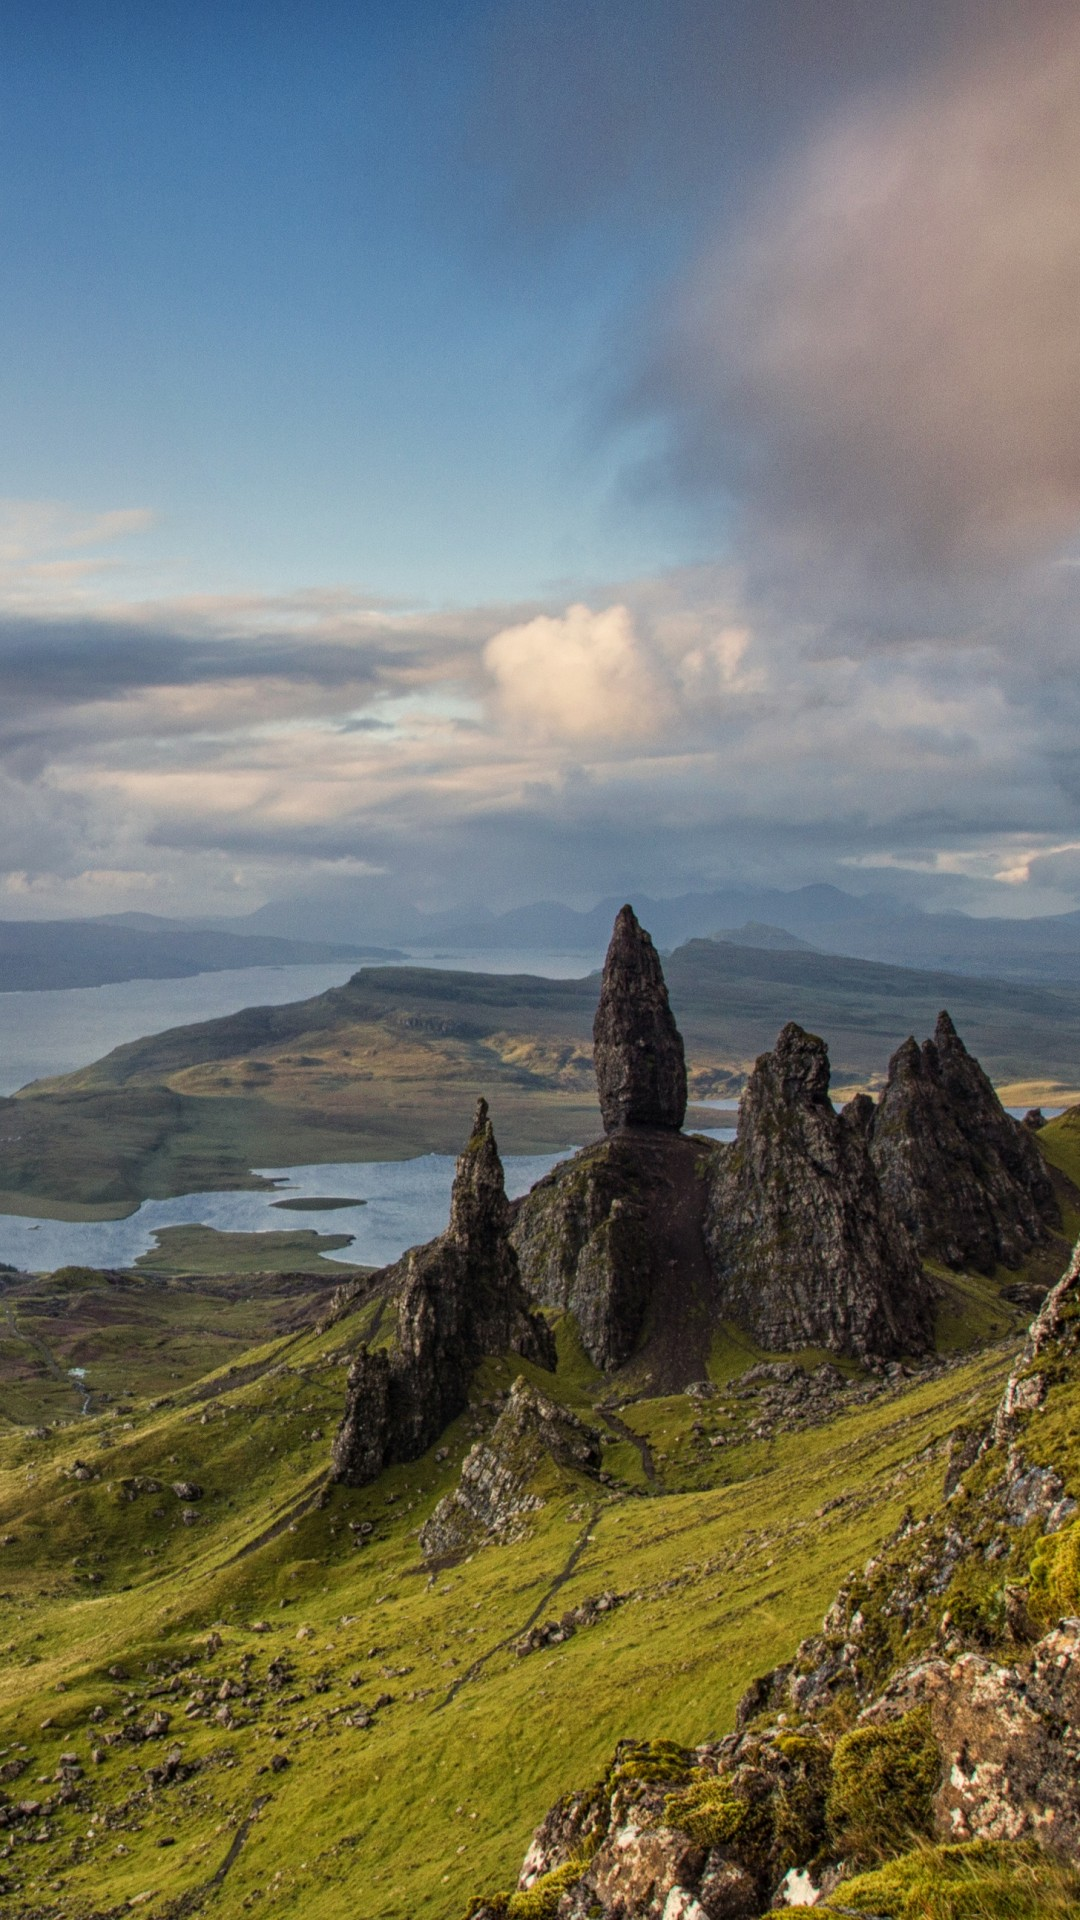 Wallpaper Isle Of Skye Scotland Europe Nature Mountains Sky 4k Travel 17767